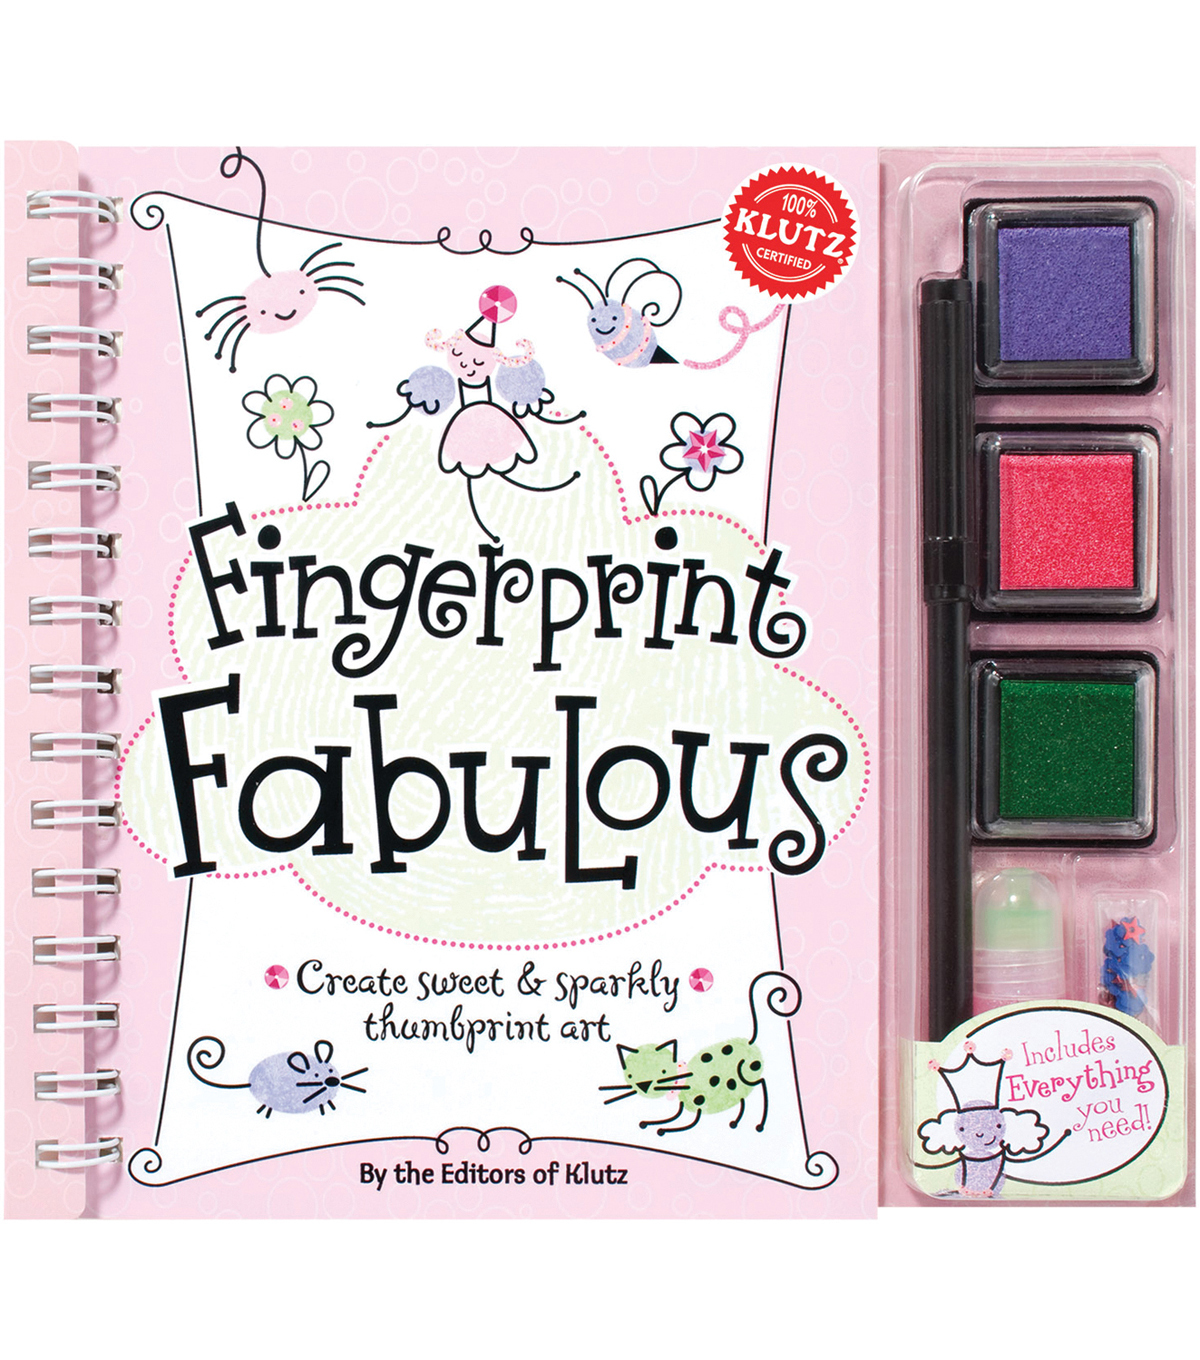 Klutz Fingerprint Fabulous Kit